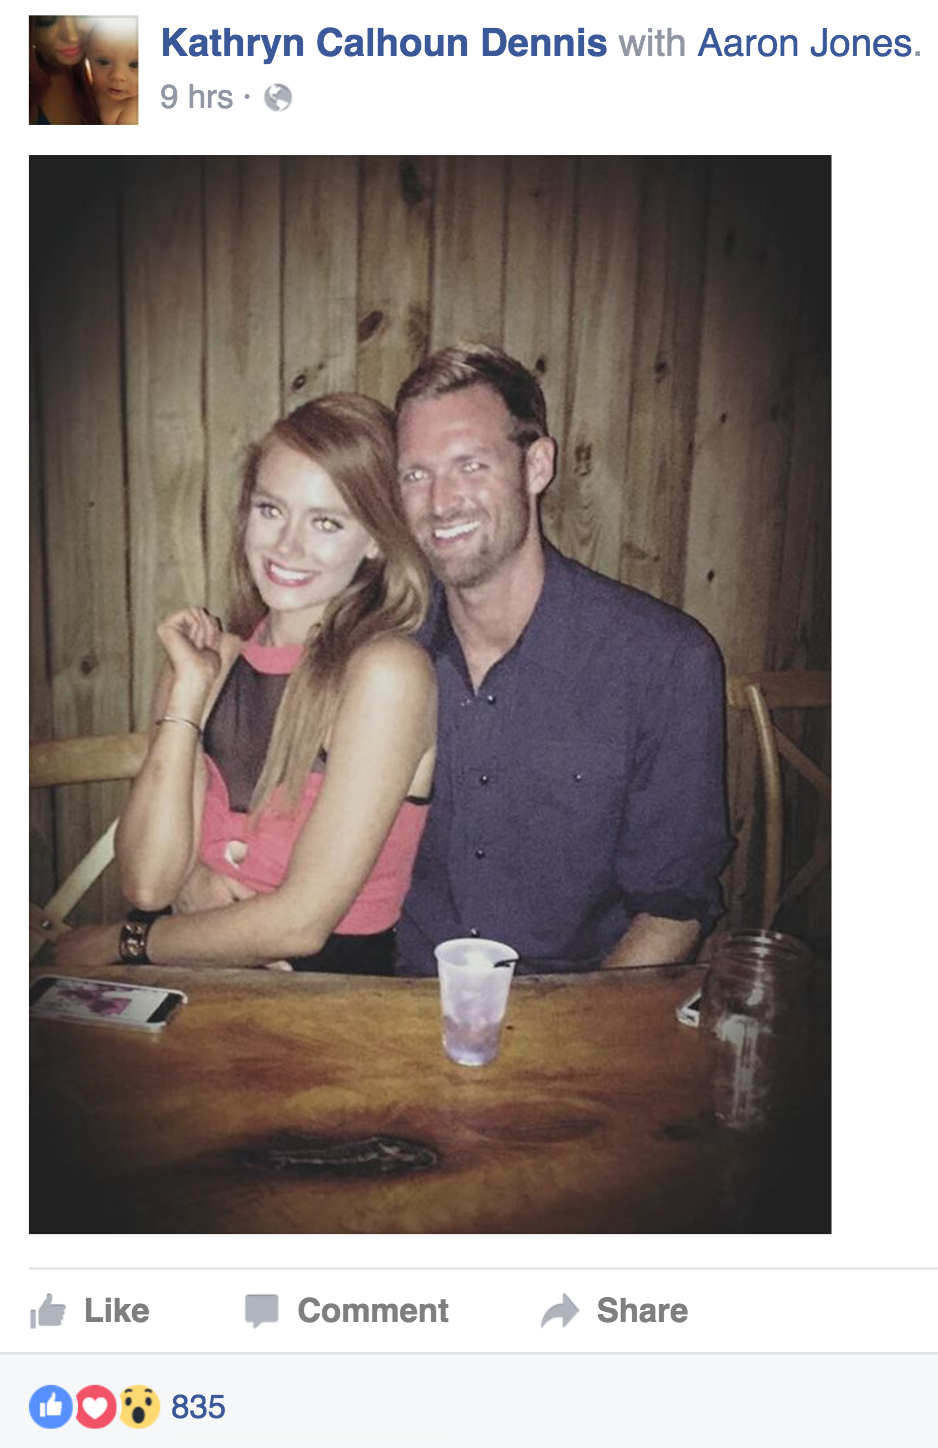 Kathryn Dennis posts a Facebook status of herself with Aaron Jones